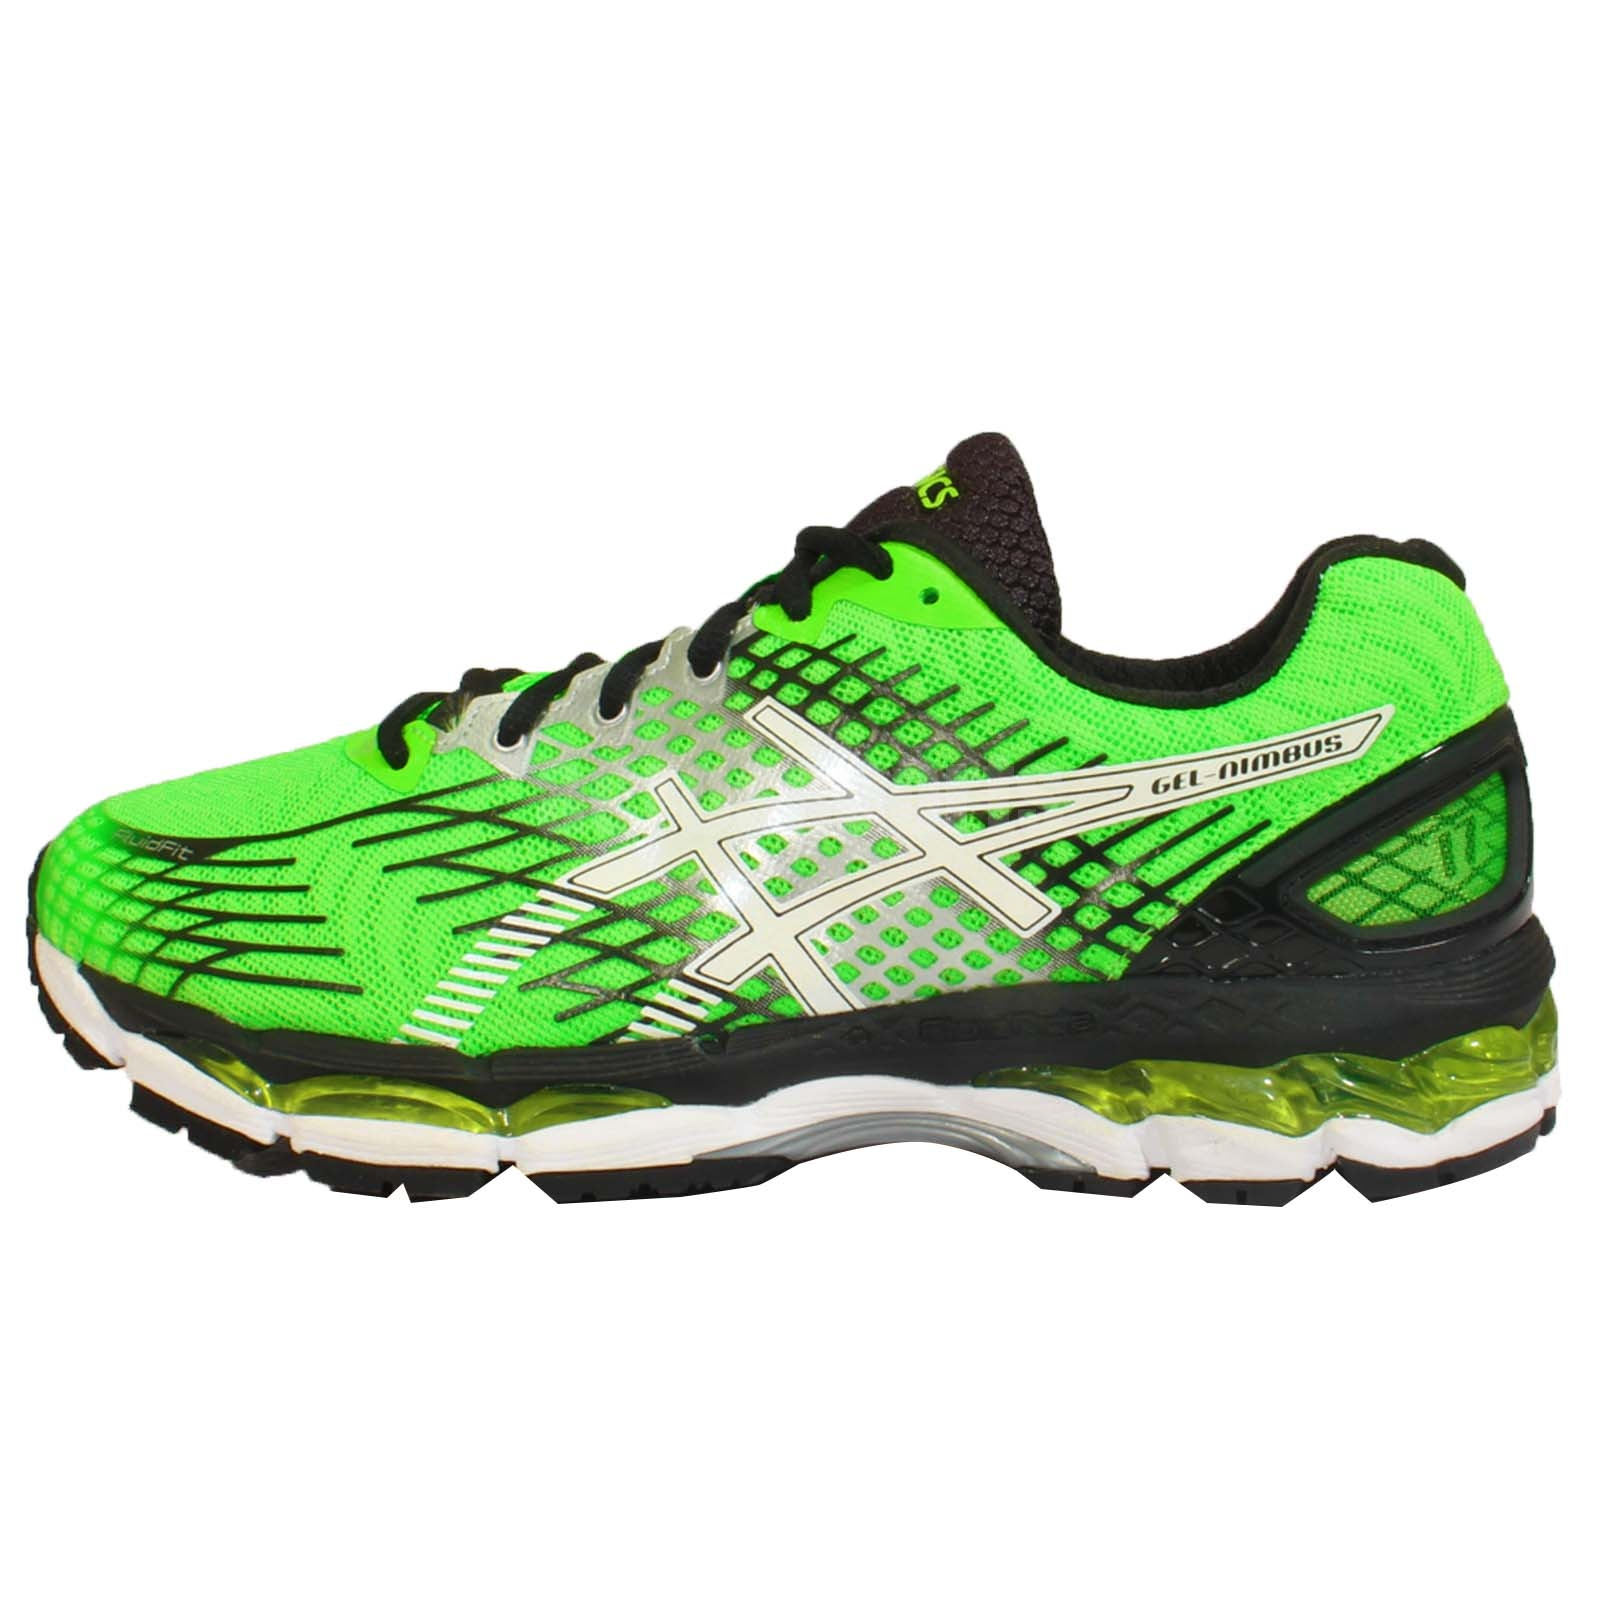 asics gel nimbus 17 2e wide green black mens running shoes t508n 8501 ebay. Black Bedroom Furniture Sets. Home Design Ideas